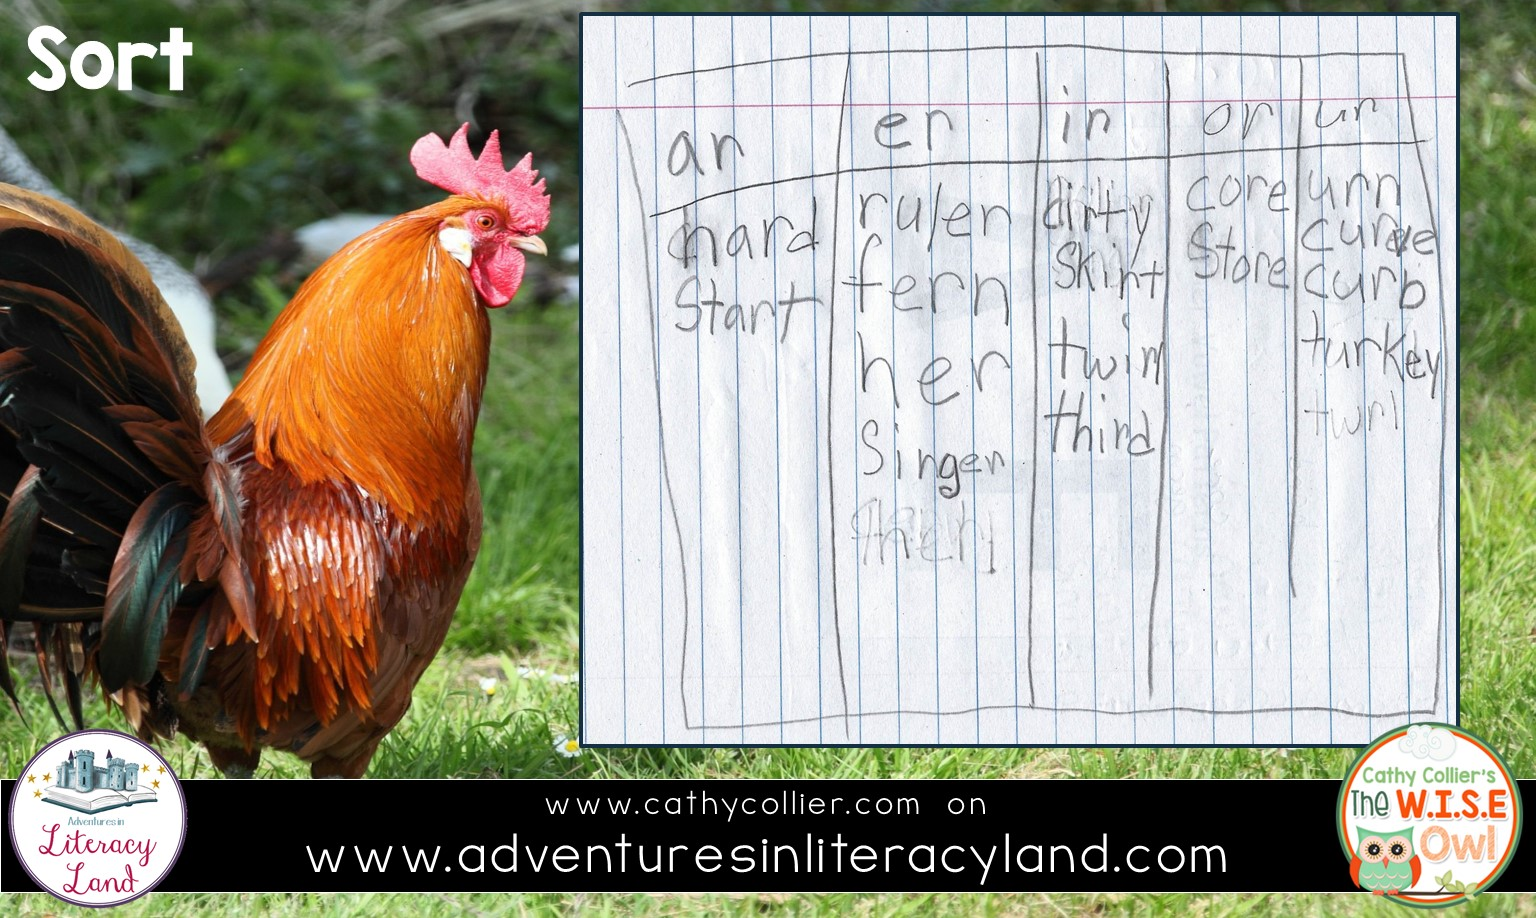 R-controlled vowels can be difficult for emergent readers and writers. Connecting the letters and sounds to the farm can make it a little easier.